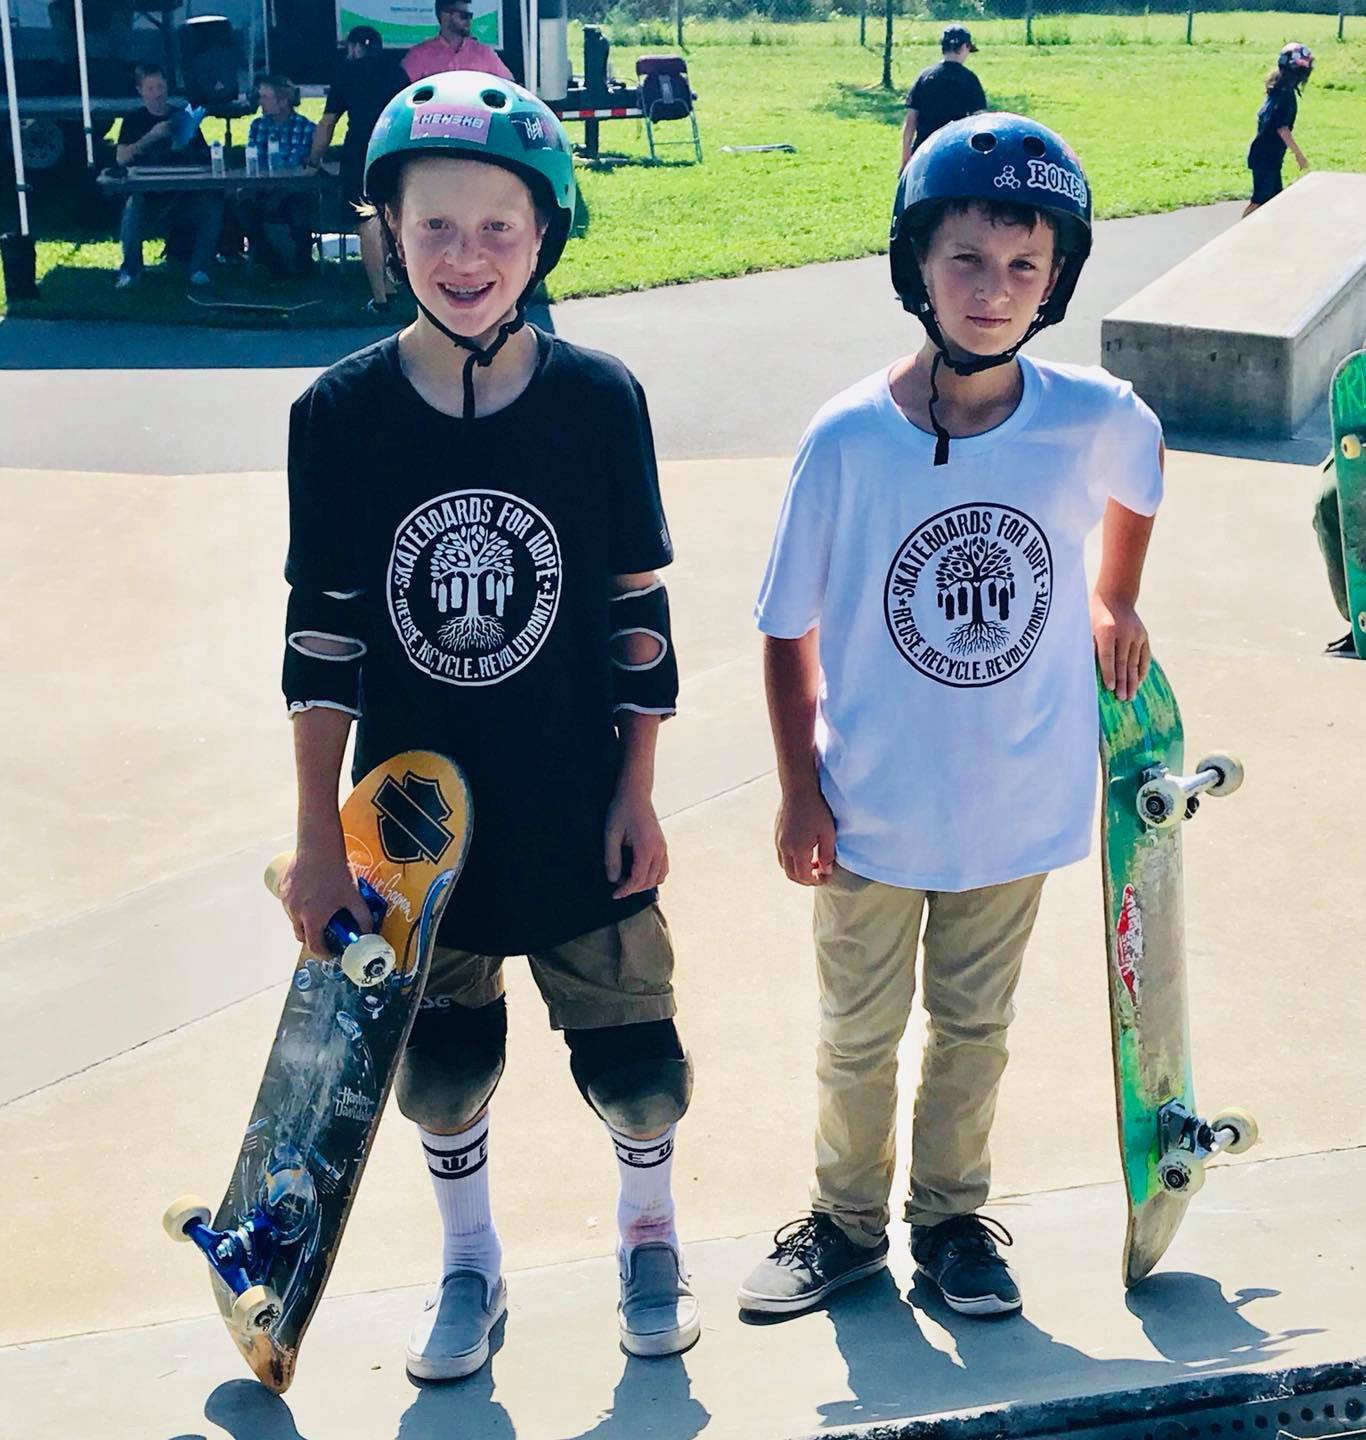 Skateboards For Hope t-shirts